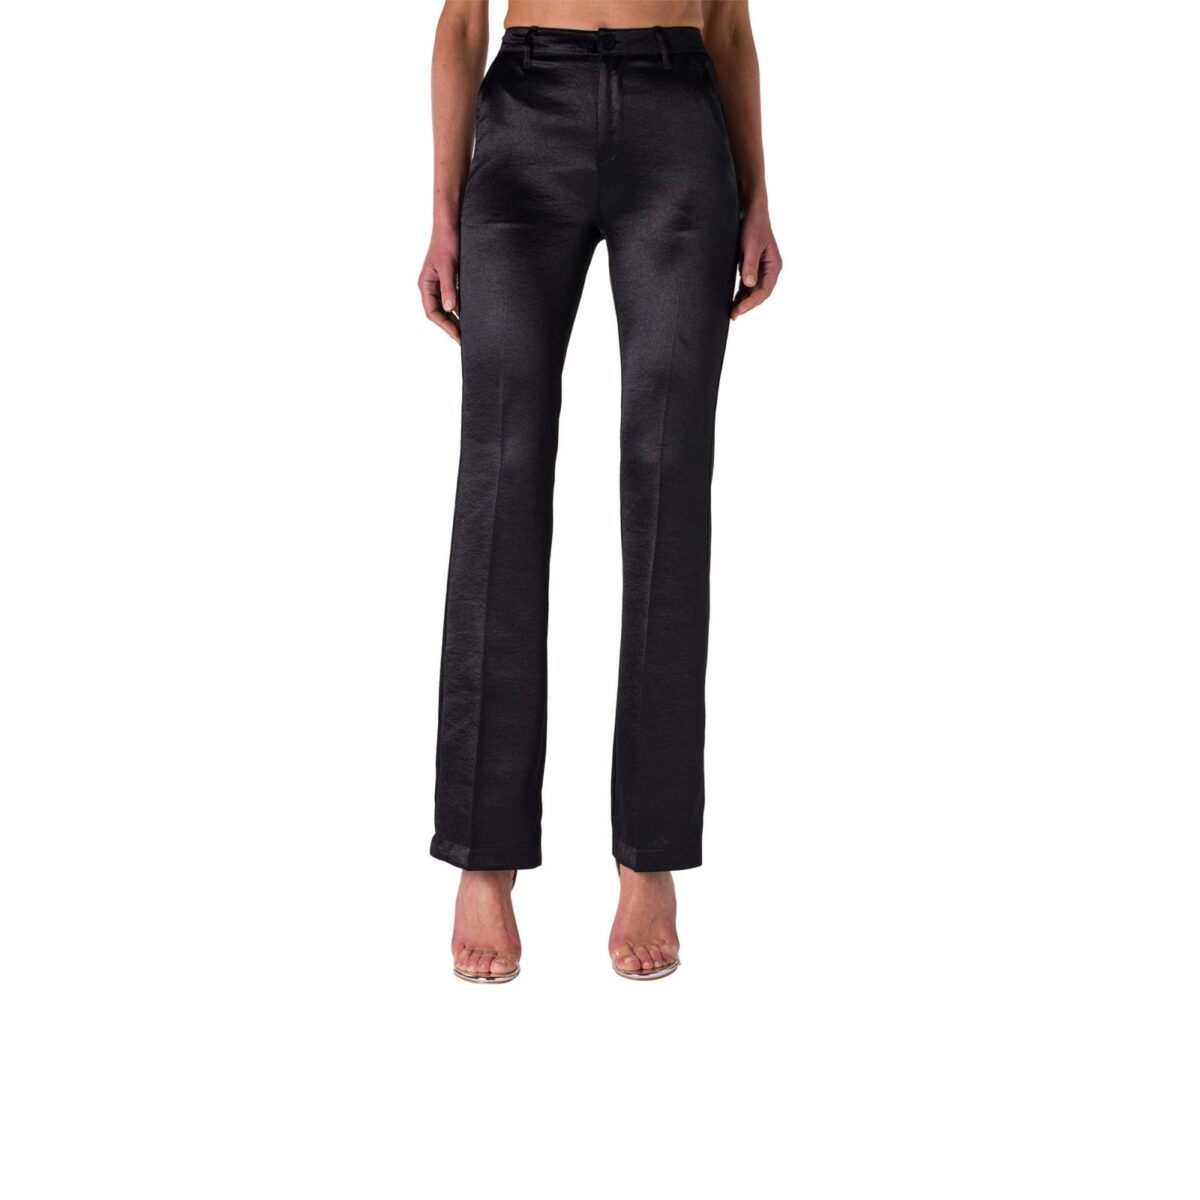 Pantalone Bootcut in satin acetato